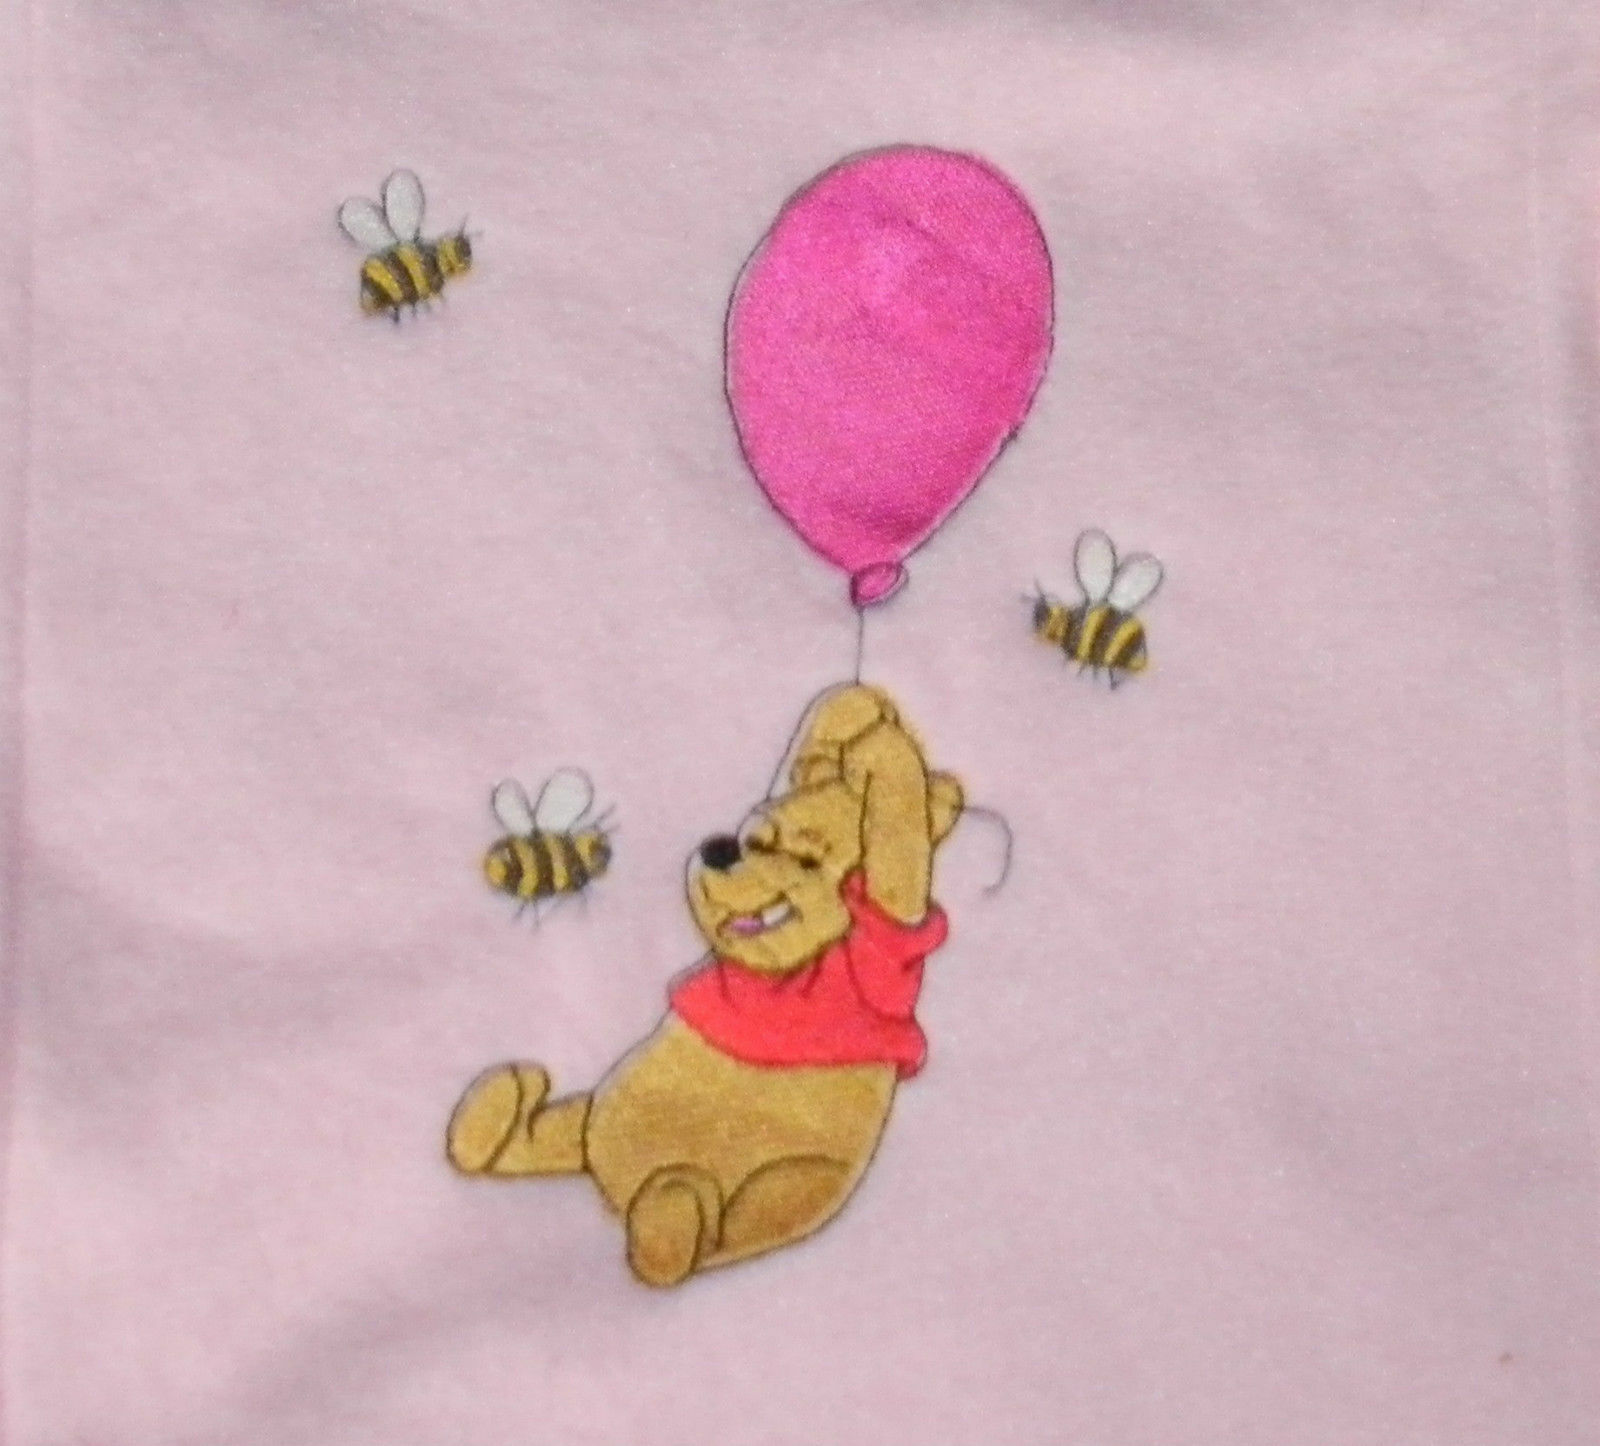 Disney Pes Winnie The Pooh Embroidery Designs For Brother Machine